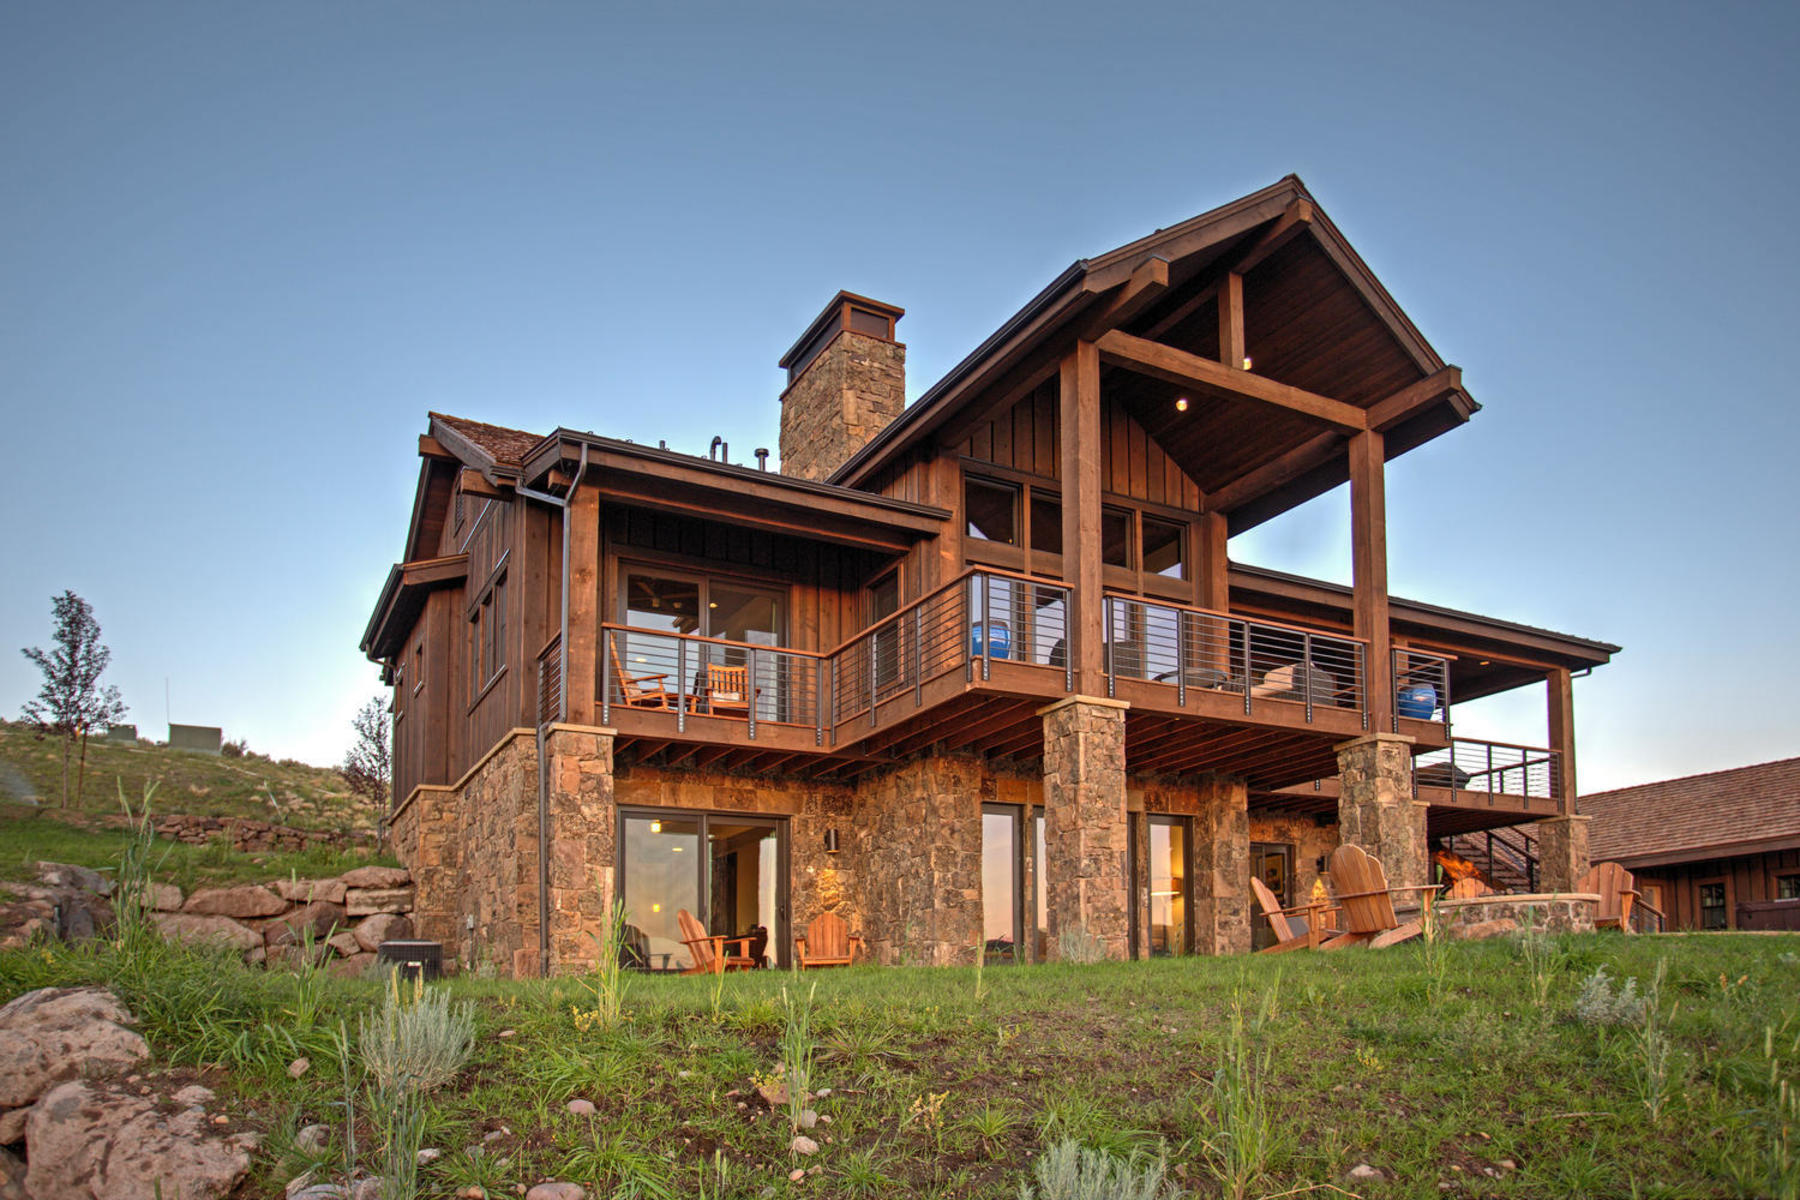 Single Family Home for Sale at Juniper Cabin with Spectacular Views 6889 E Falling Star Cir Lot 263, Heber City, Utah, 84032 United States